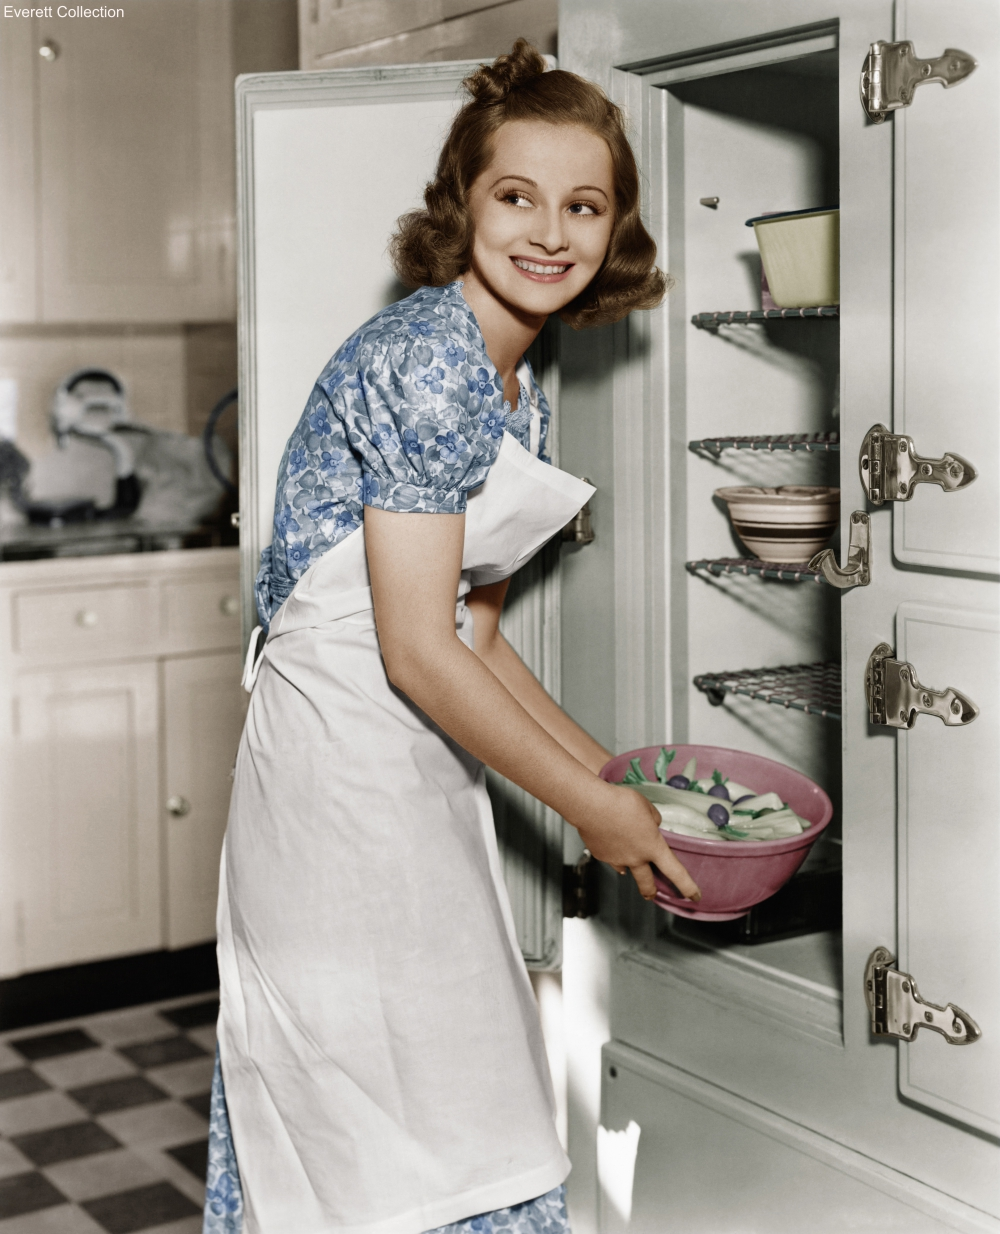 Housewife Removing a Bowl of Veggies from the Icebox